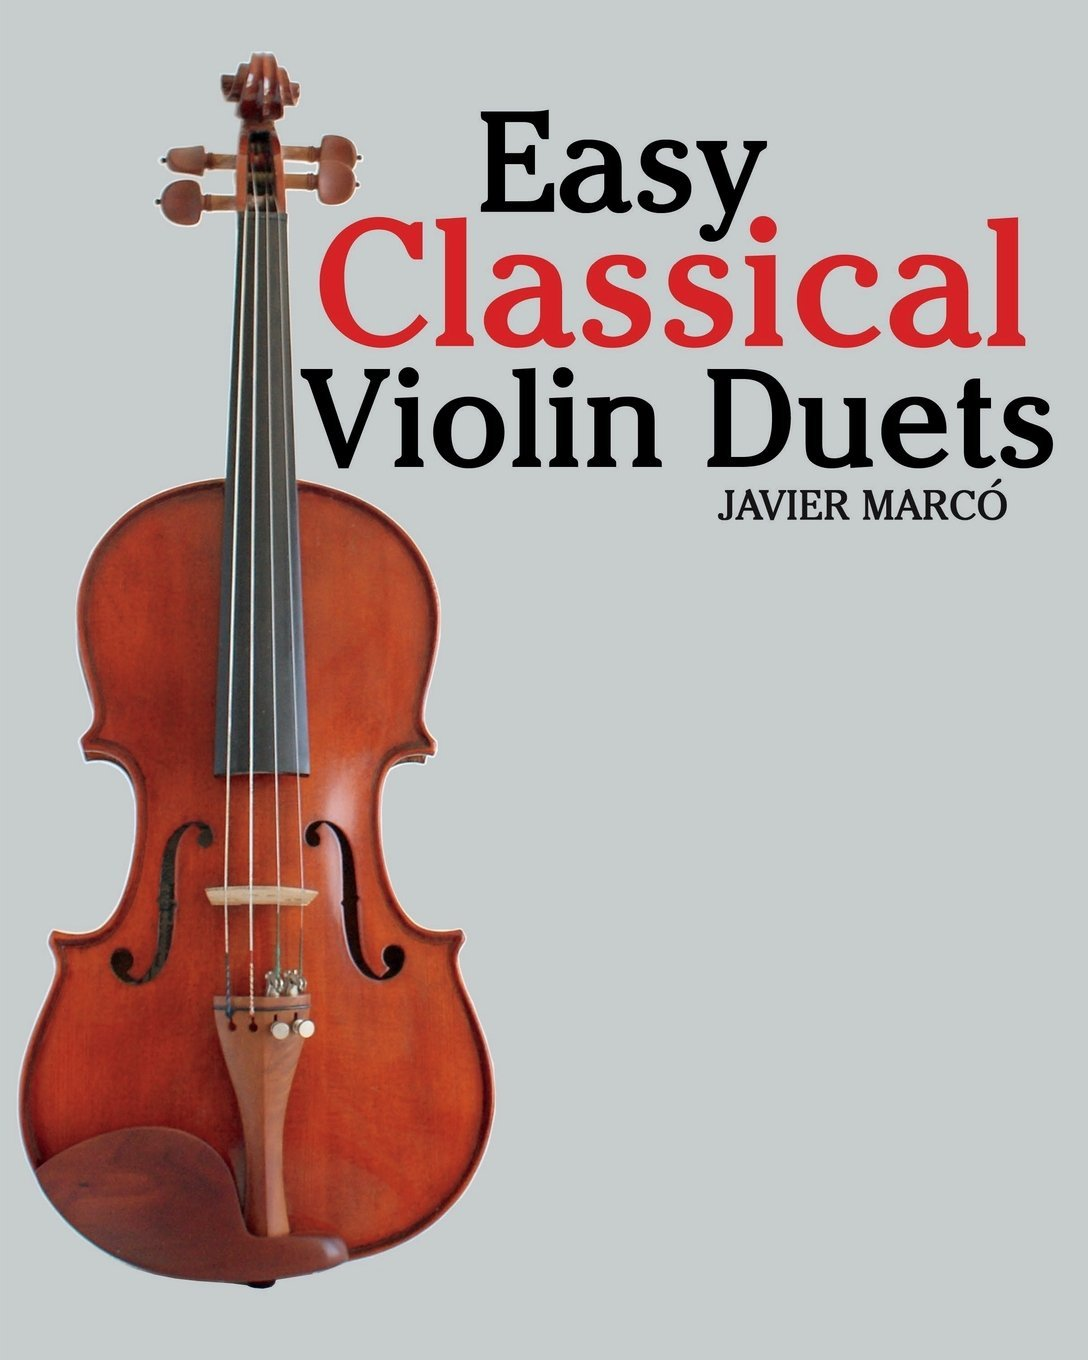 Easy Classical Violin Duets: Featuring music of Bach, Mozart, Beethoven, Vivaldi and other composers. pdf epub